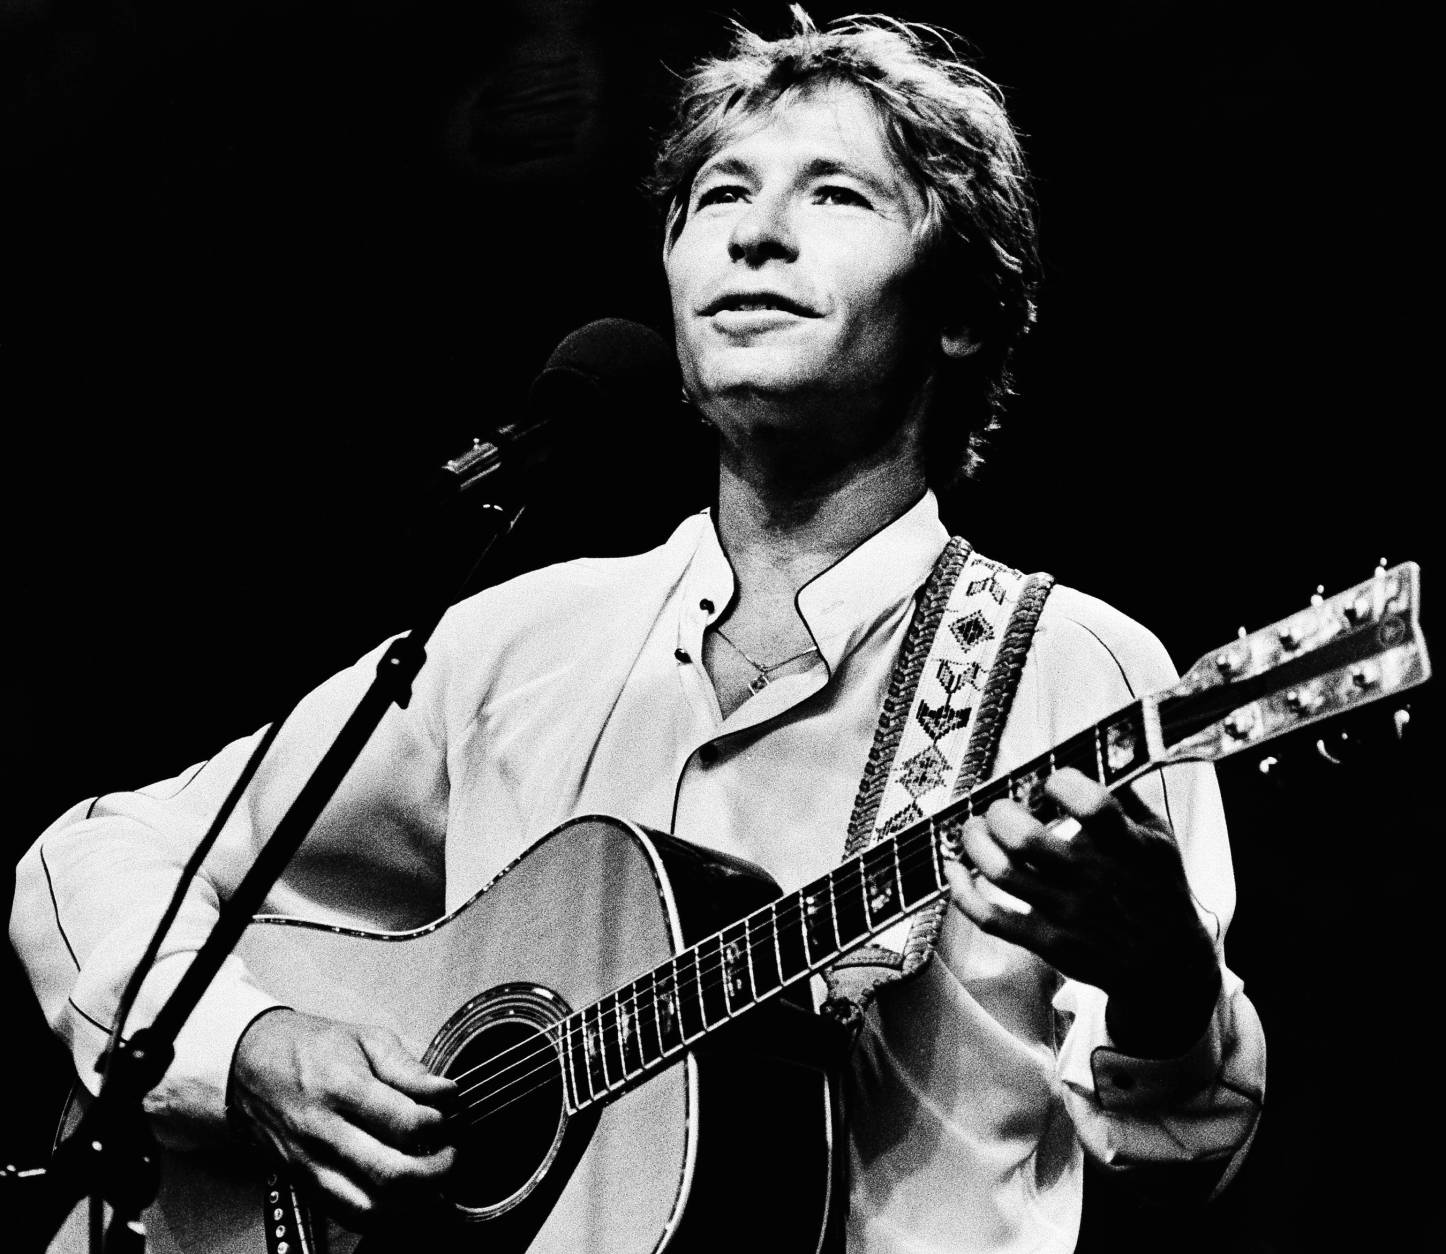 FILE - In this July 28, 1983 file photo singer John Denver strums his guitar as he performs during an outdoor concert on the Boston Common, Boston, Mass.  Denver was honored posthumously with a star on Friday, Oct. 24, 2014, on the Hollywood Walk of Fame in Los Angeles. Two of Denver's three children, Zak Deutschendorf and Jesse Belle Denver, accepted the star on behalf of the late singer's family.  Denver died tragically in a plane crash on Oct. 12, 1997. (AP Photo/Keith Jacobson, File)